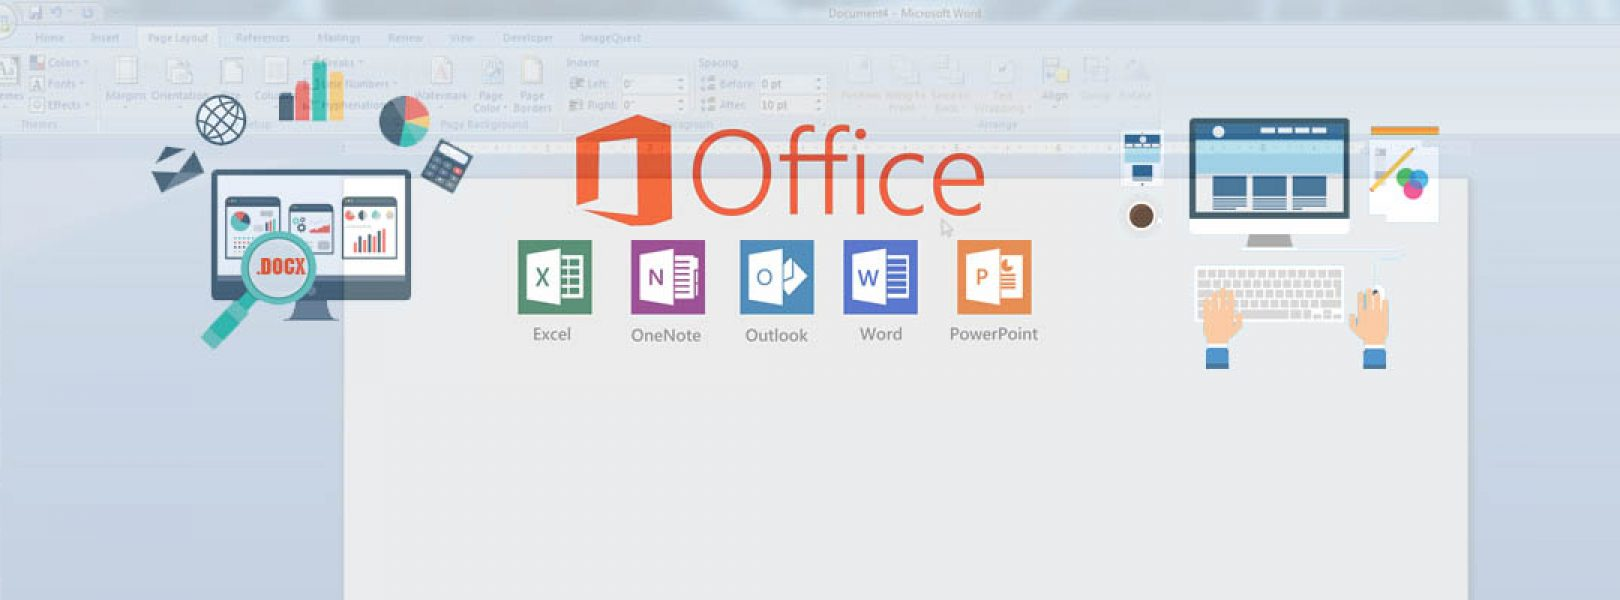 Cannot Start Microsoft Office Outlook Open The Window Problem